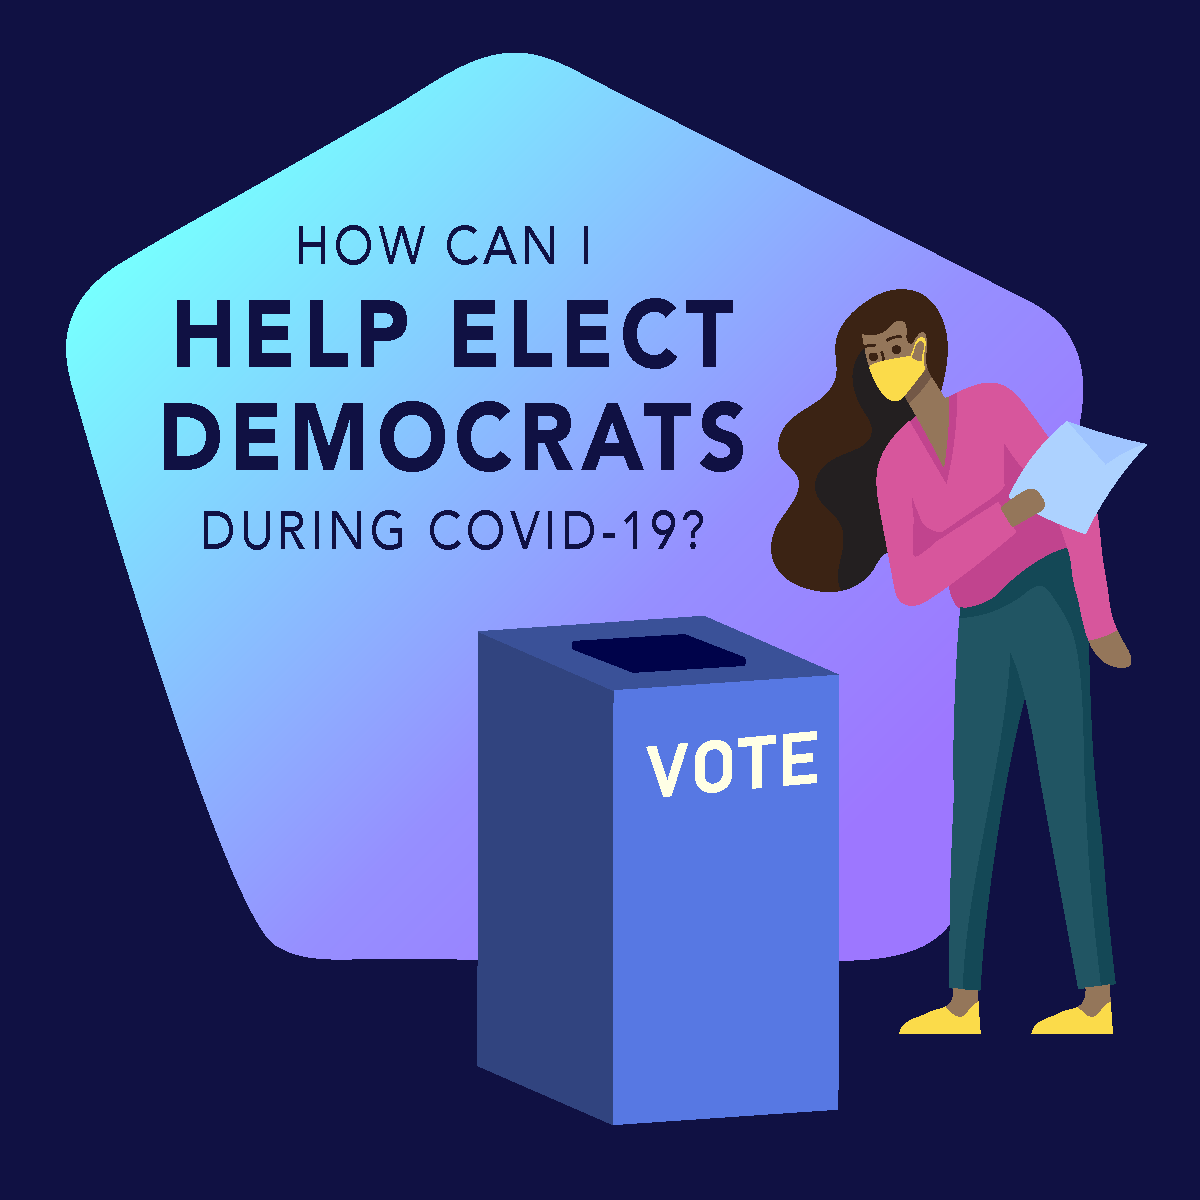 How can I help elect democrats during COVID-19?